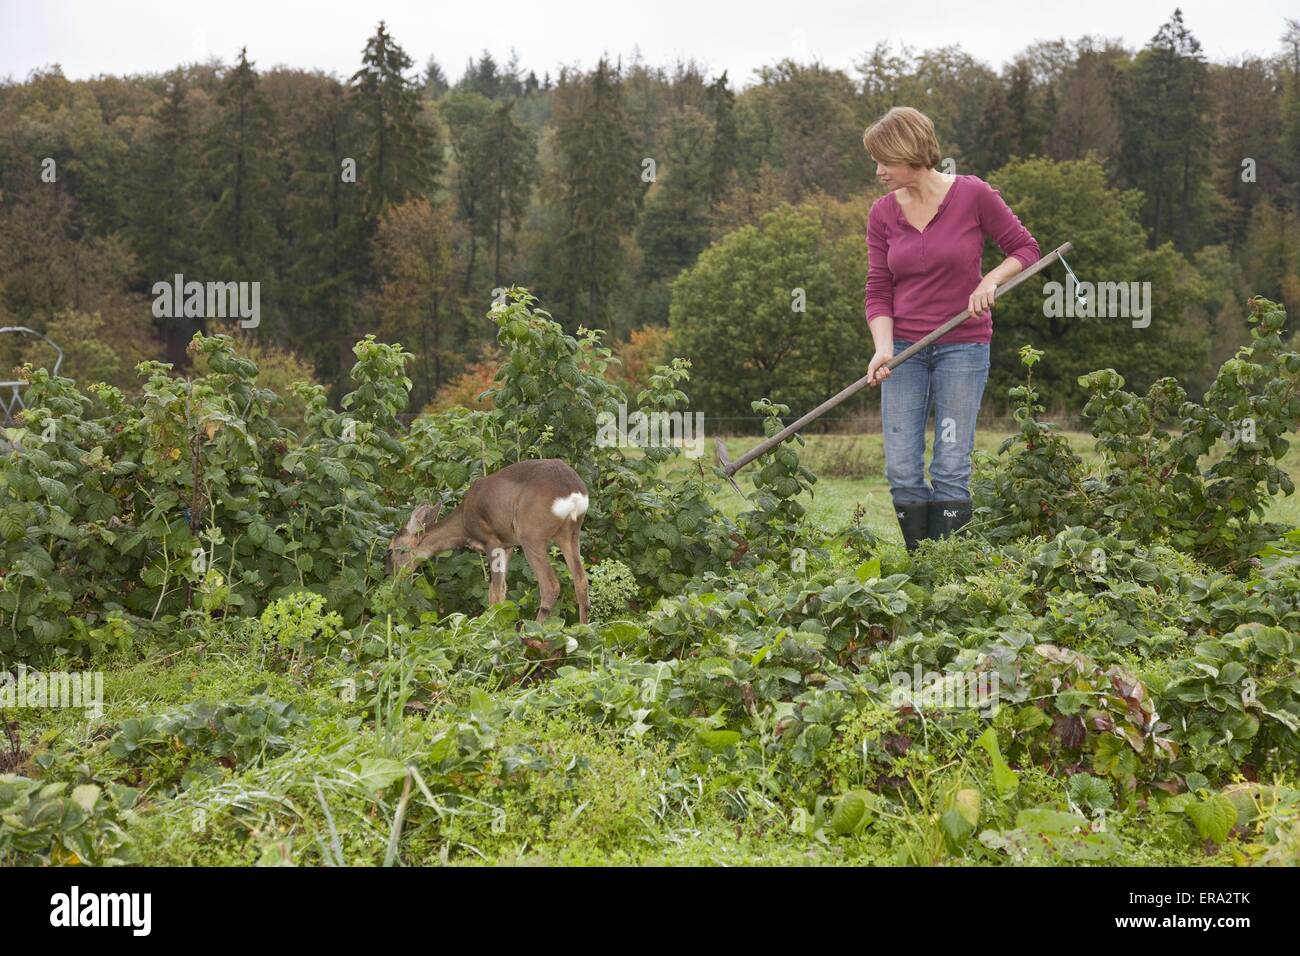 woman and young roe deer - Stock Image